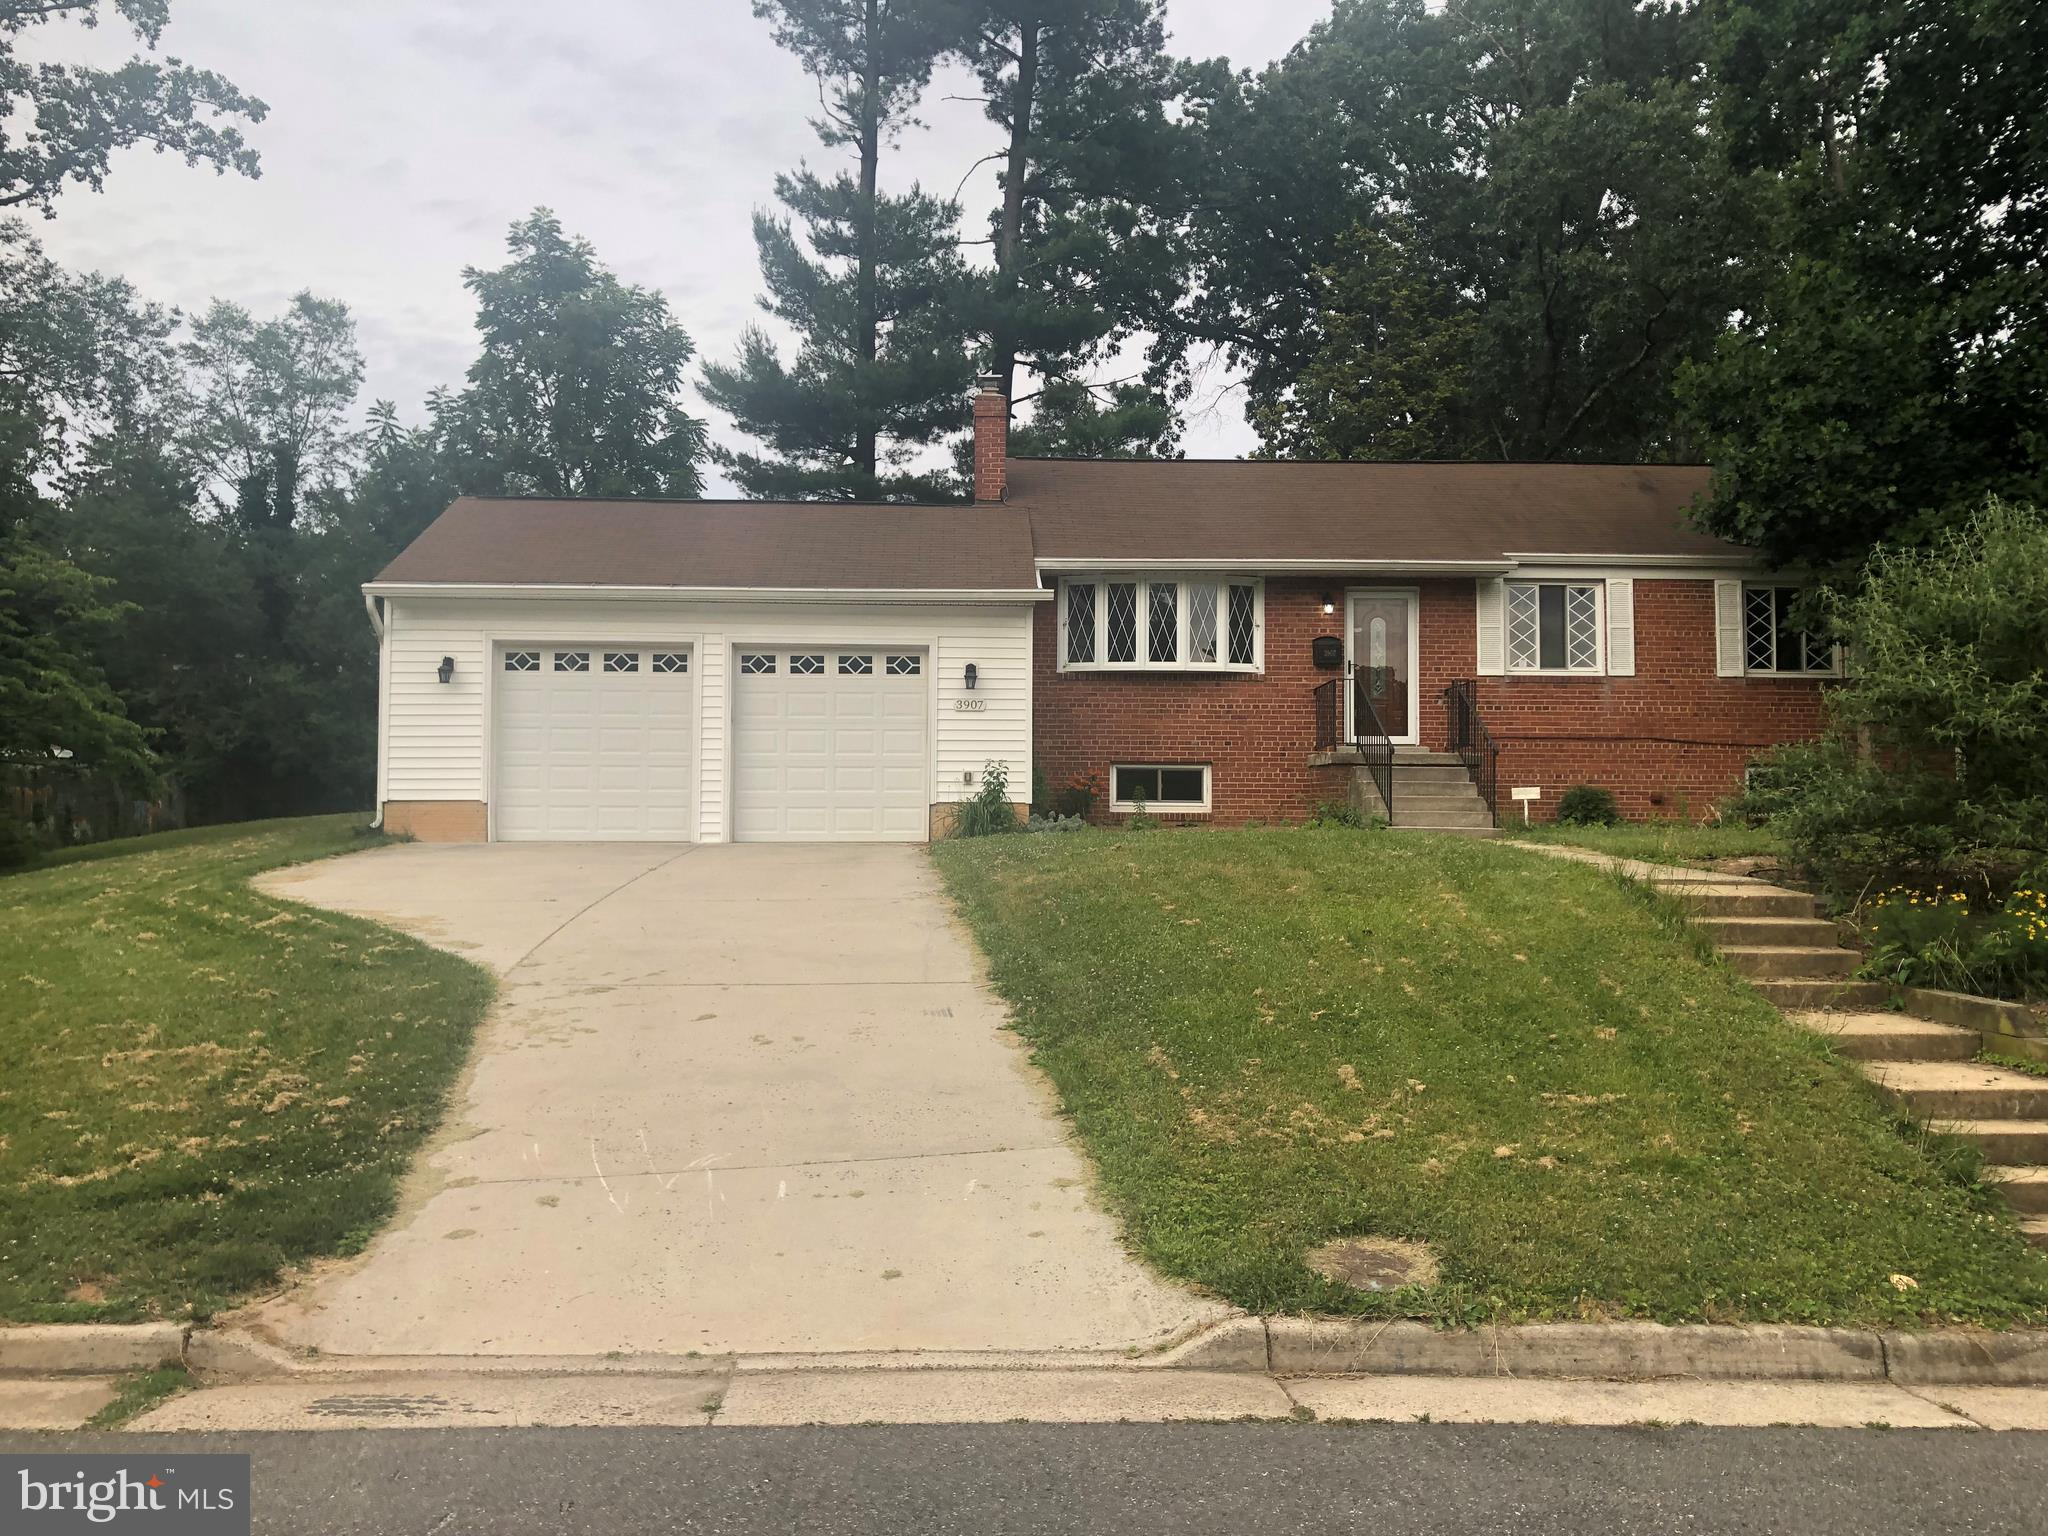 Back on Market! Contract Fell Through and Price Reduced for Quick Sell!! Large Rambler with Detached 2 Car Garage in Sought After Cul De Sac Neighborhood, 5 Bedrooms, 2 Full Baths, Large Kitchen, Granite Countertops, Stainless Steel Cooktop, Oven, and Microwave. Close to Major Highways, and Shopping.